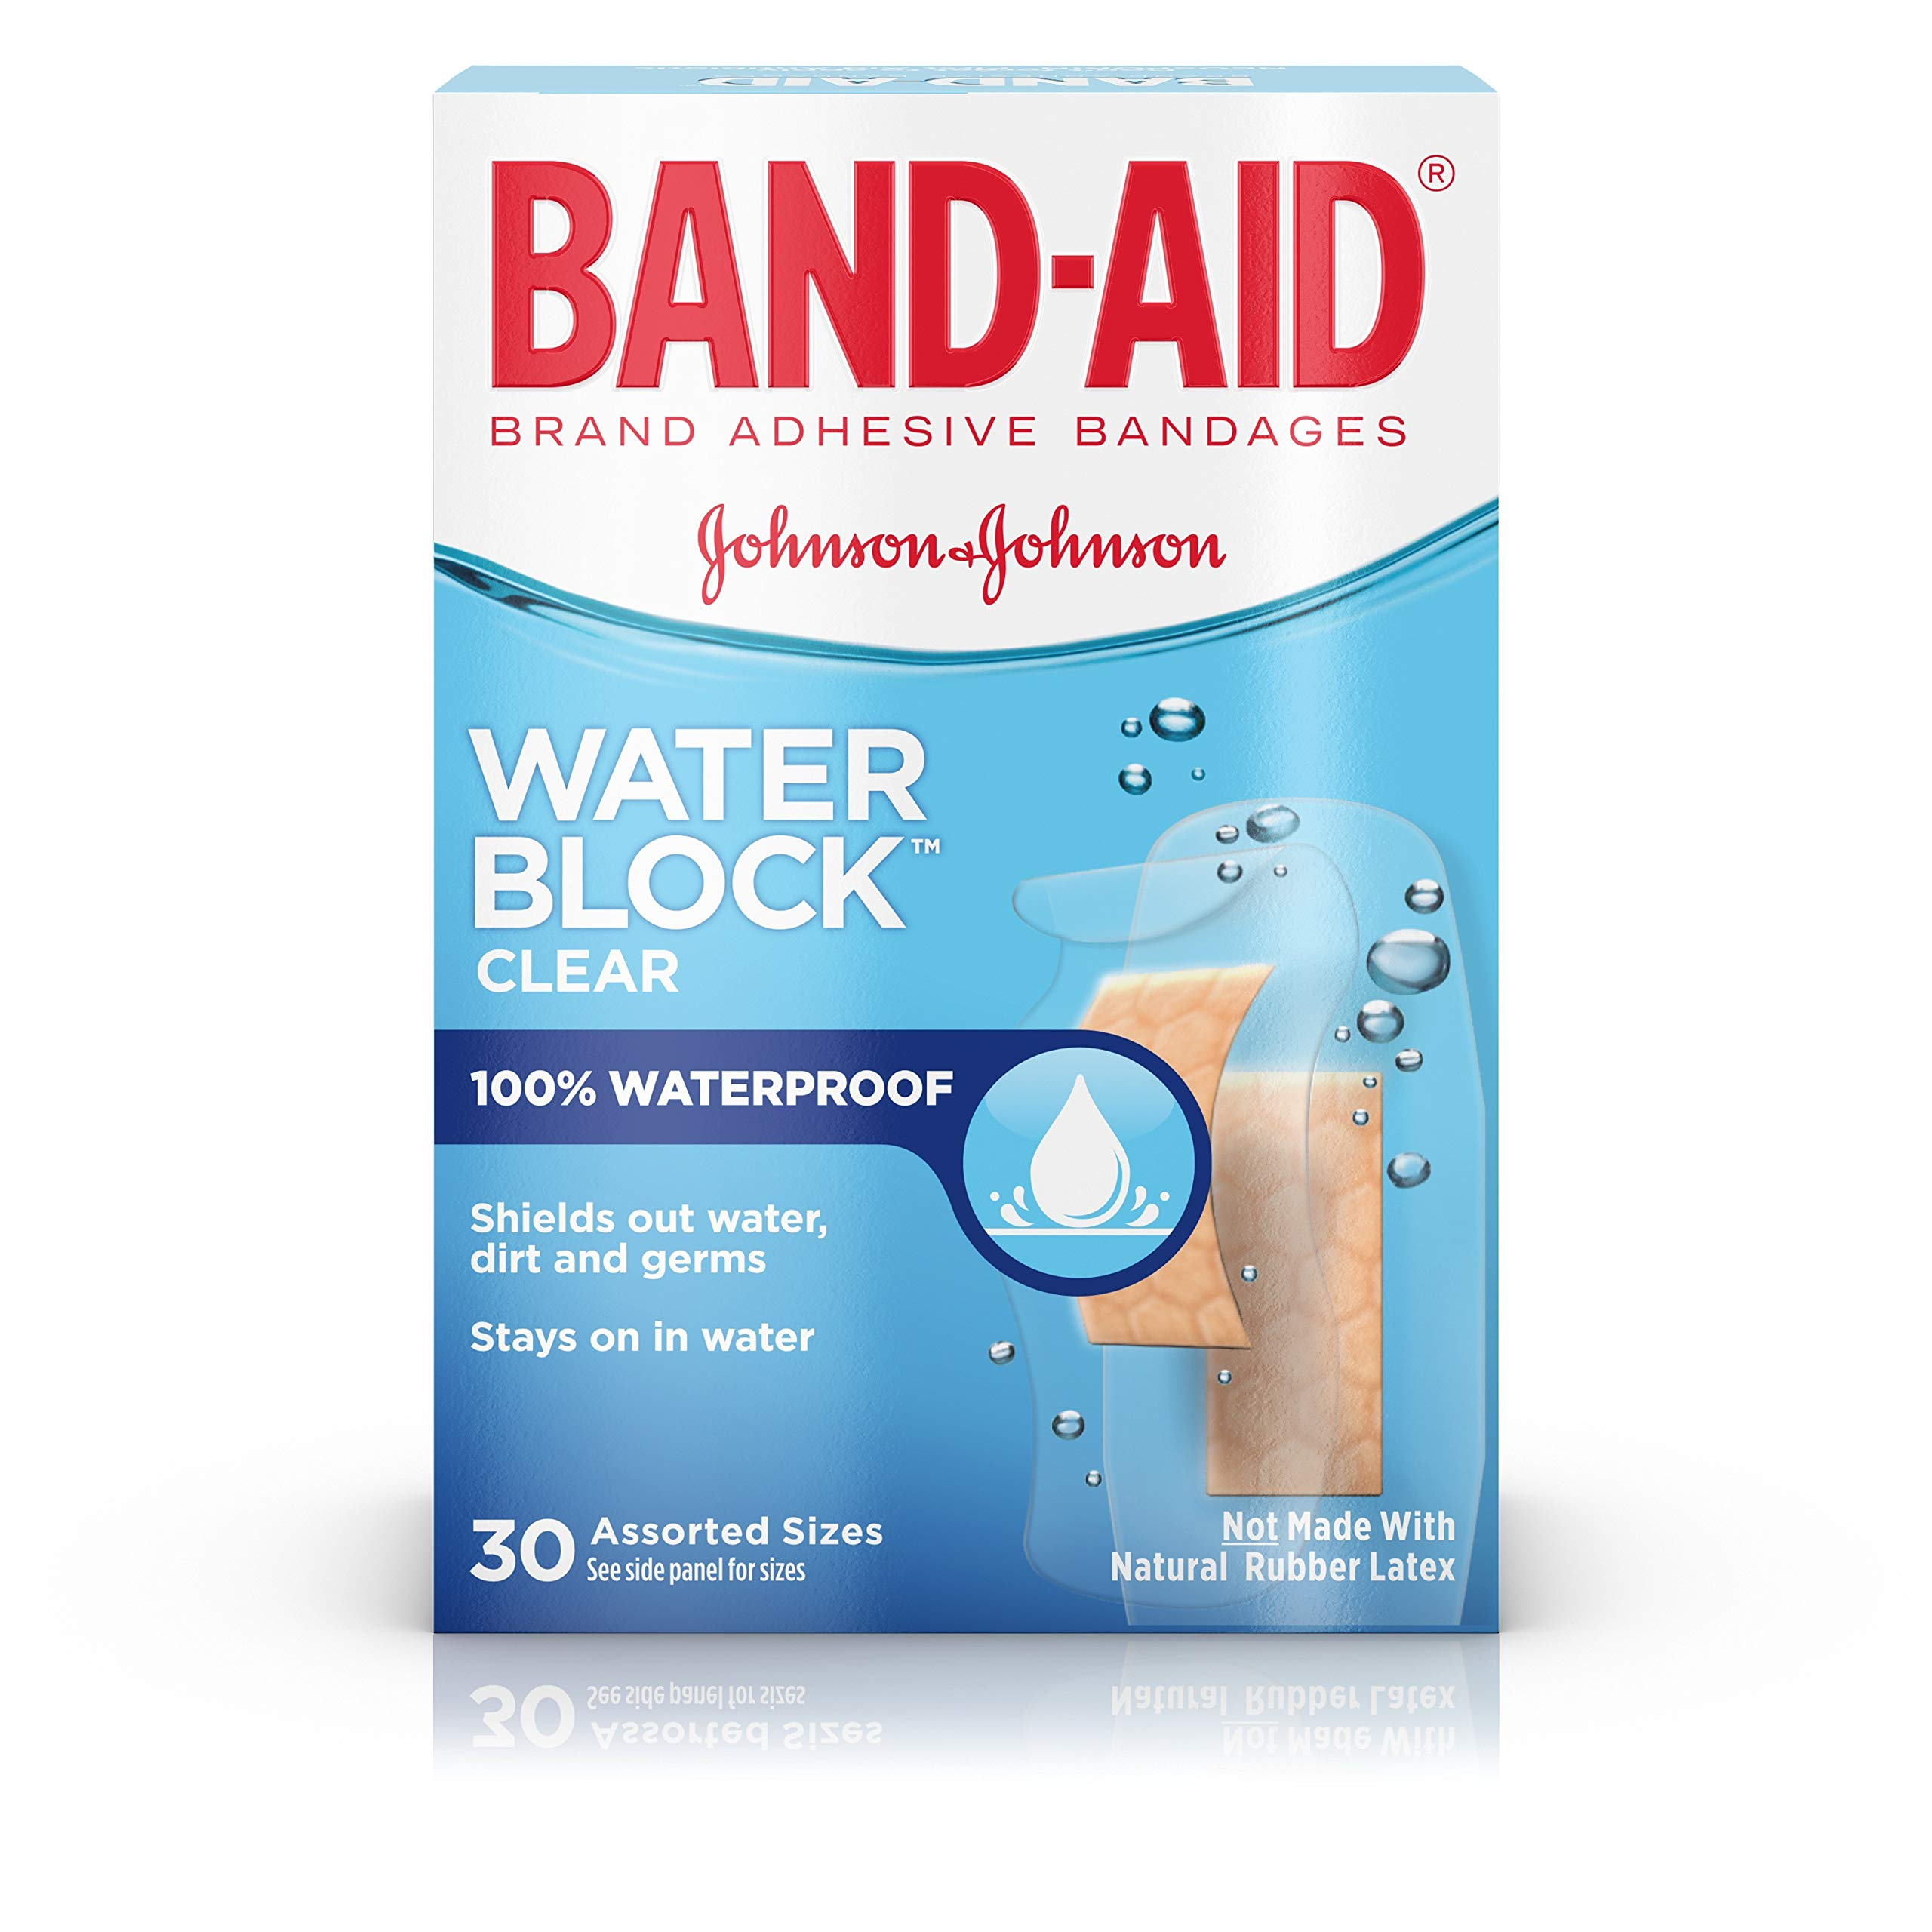 Band-Aid Brand Water Block Plus Waterproof Clear Adhesive Bandages for Minor Cuts and Scrapes, 30 ct (6 Pack) by Band-Aid (Image #1)